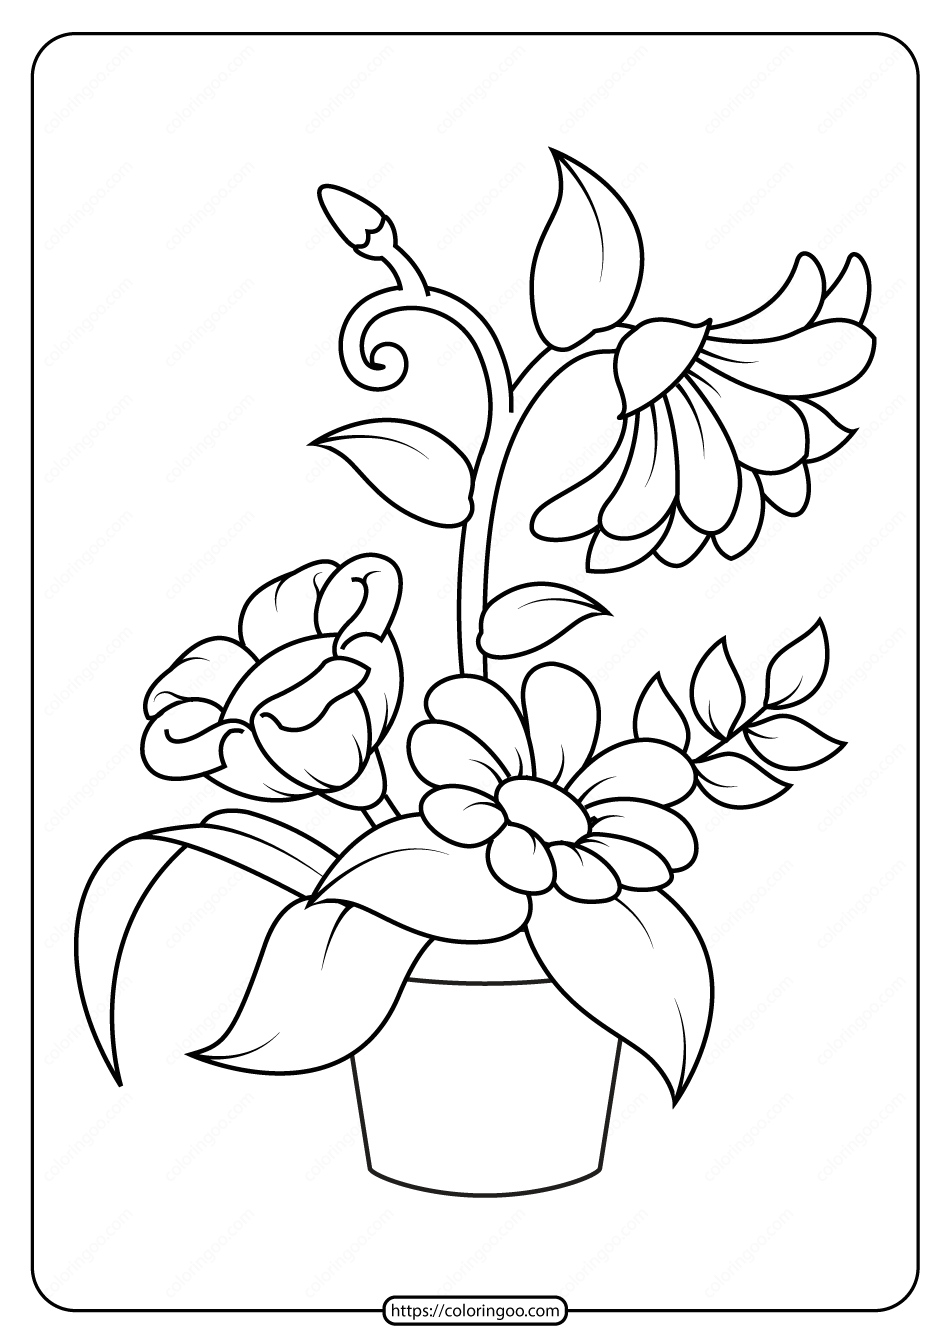 flowers coloring pages printable free printable flower coloring pages for kids best pages printable flowers coloring